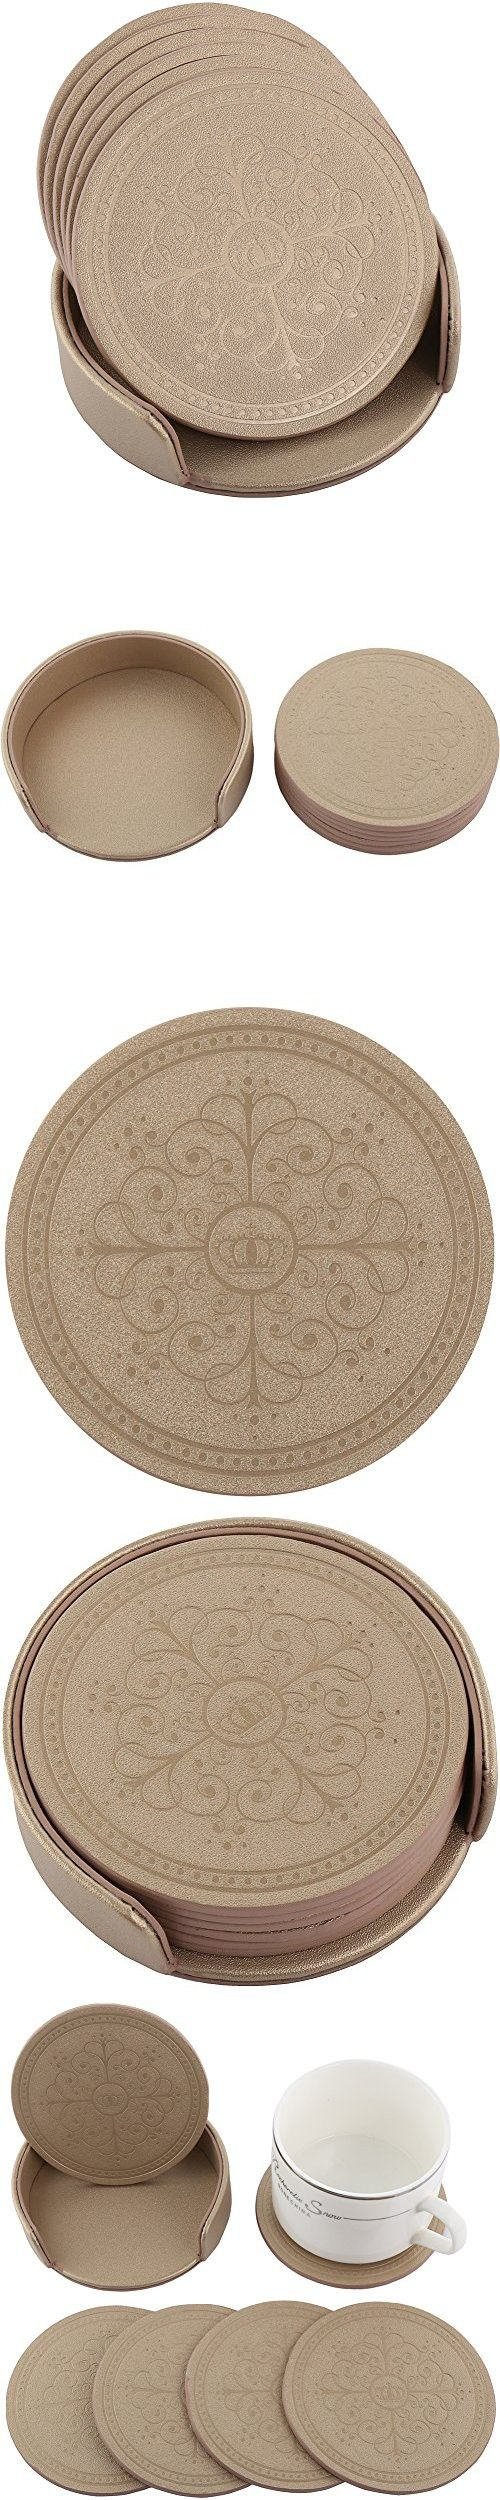 HappyDavid Leather Round Placemats Cup Mat Set of 6 with Coaster Holder for Fine Wine Beer or Any Beverage Use on Bars or Fine Furniture in Your Kitchen(Gold round)